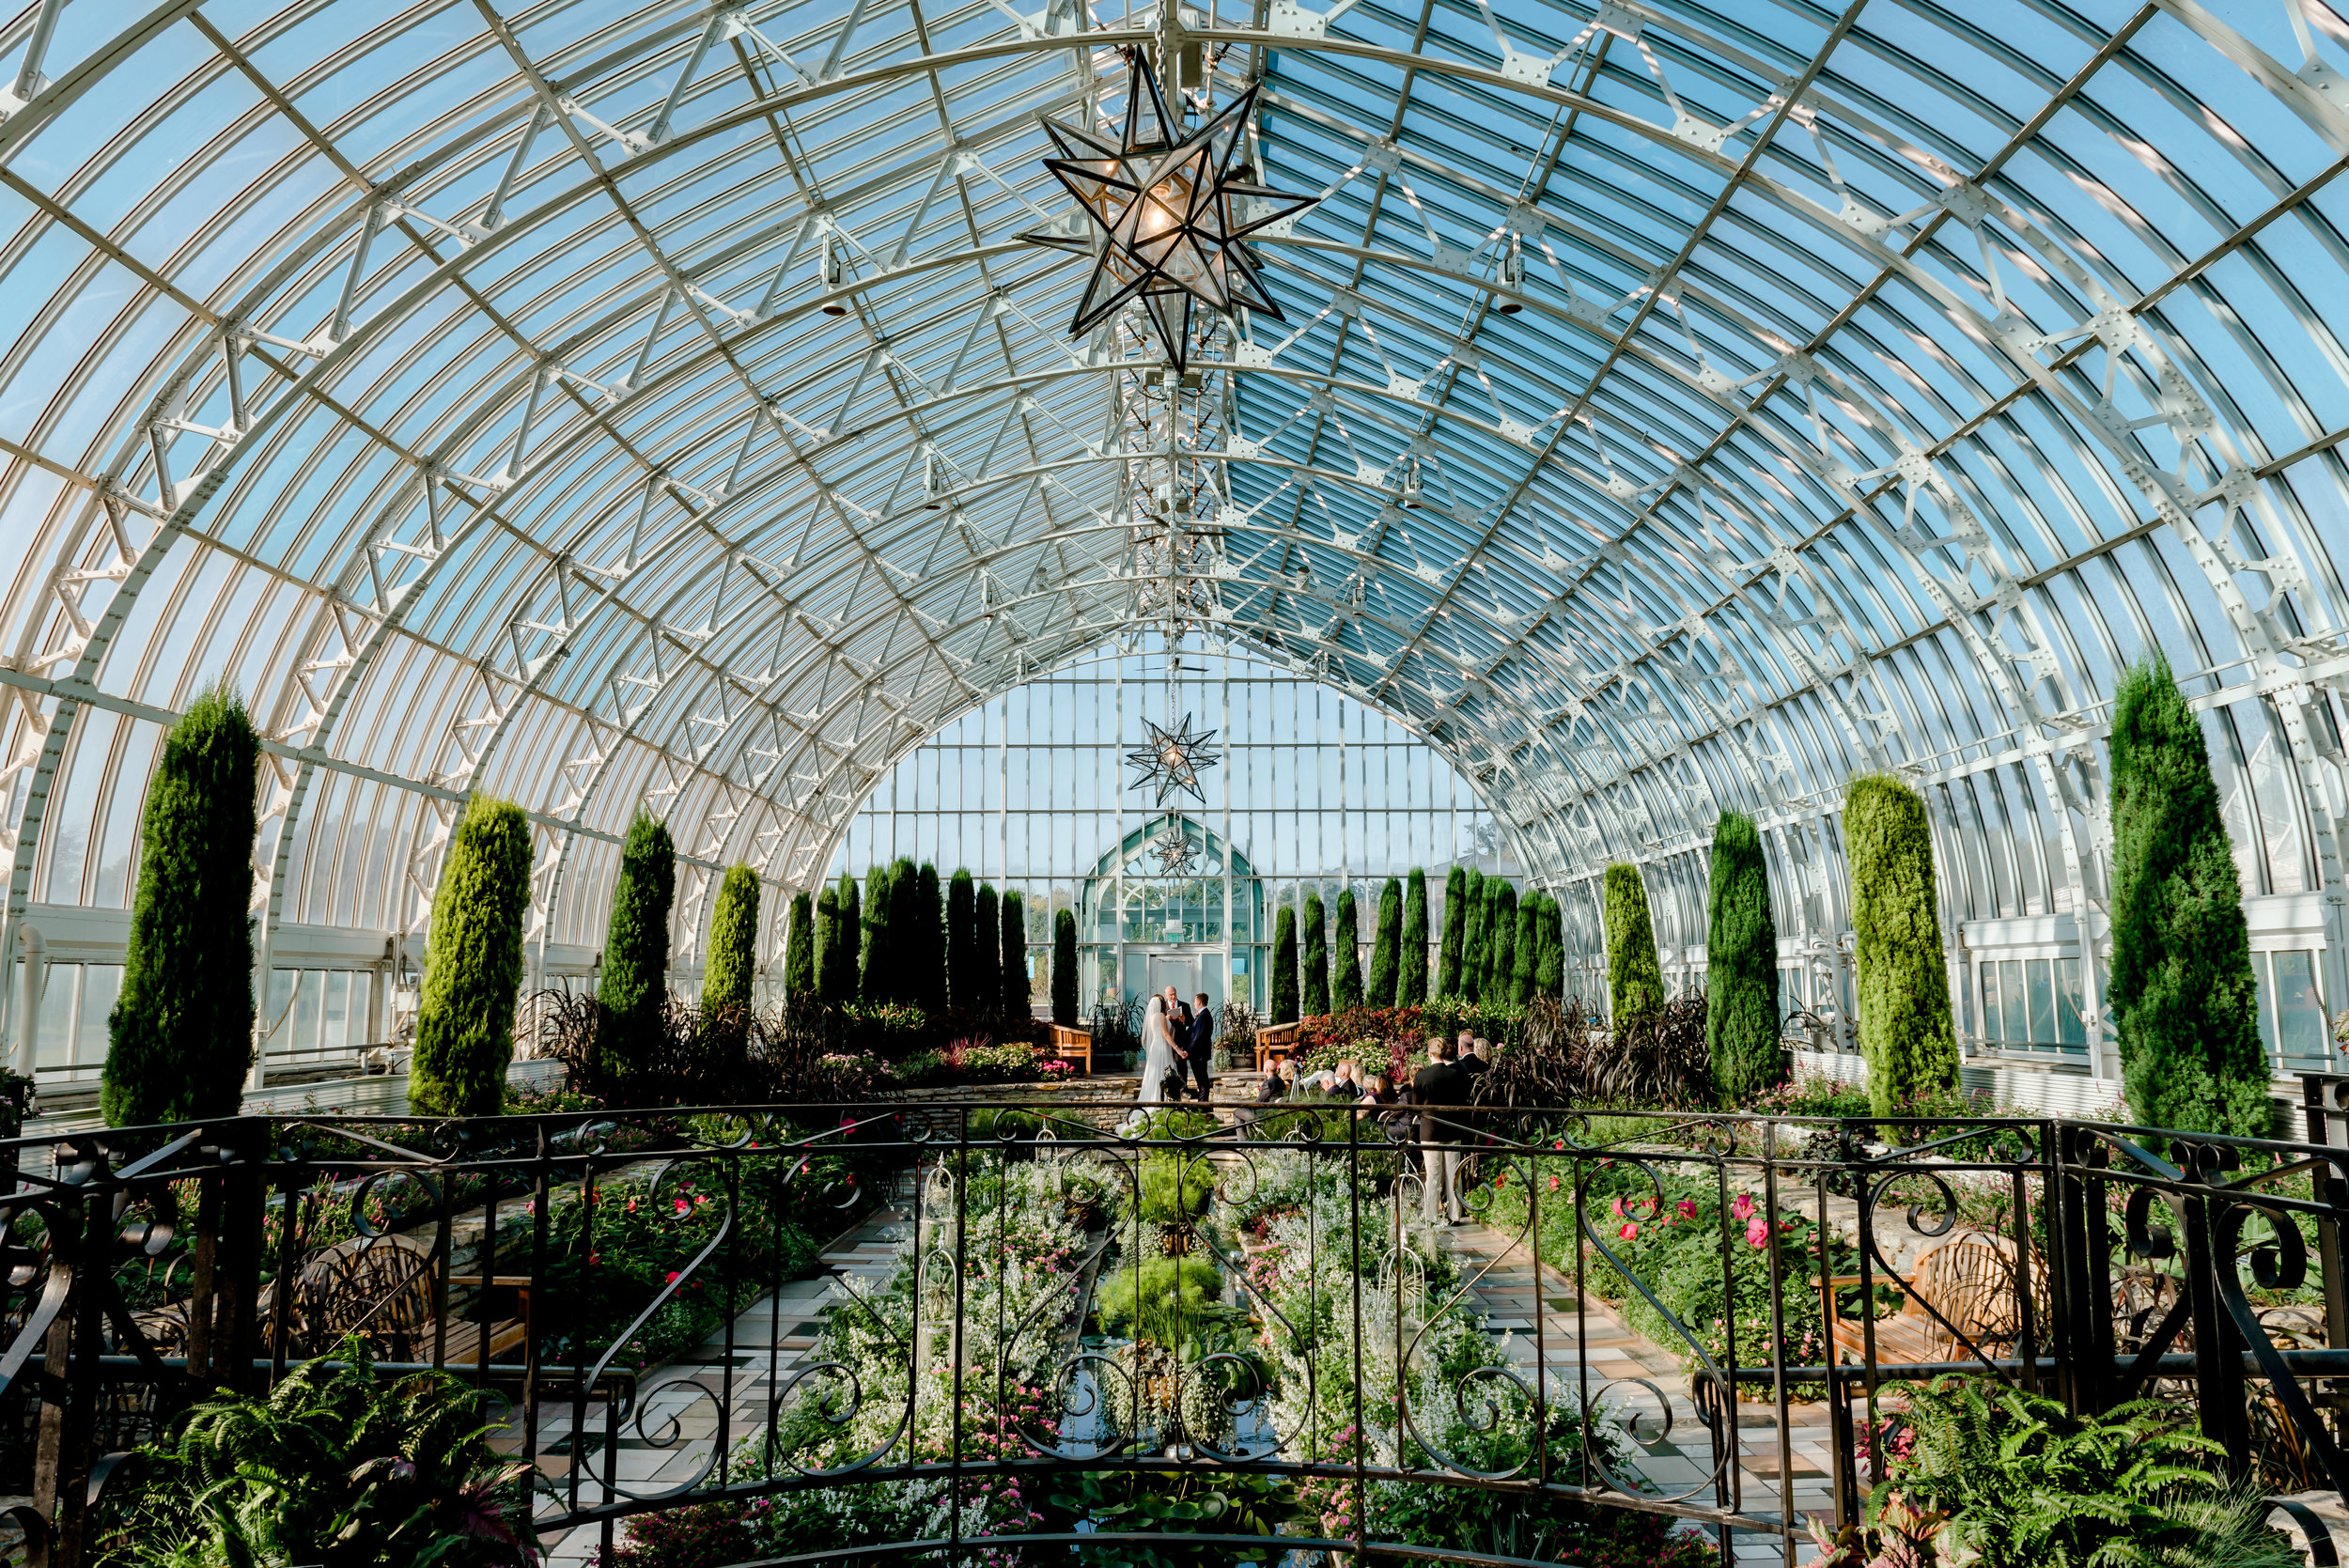 Morning Wedding Ceremony in Sunken Gardens at Como Conservatory in St. Paul MN - MN Best Elopement Photographer